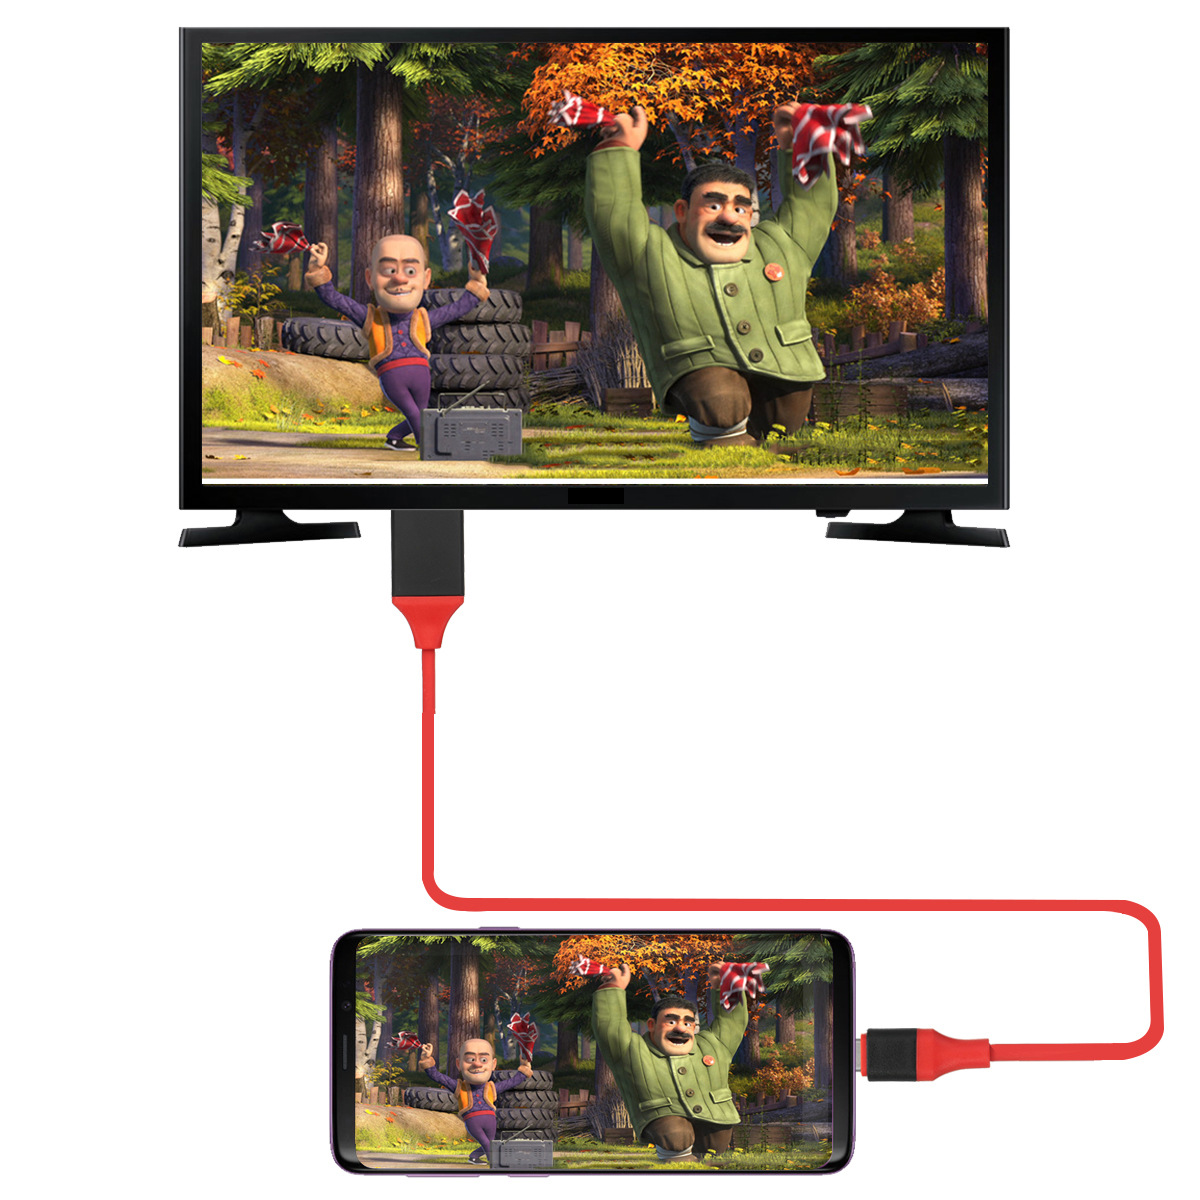 USB 3.1 Type-C to HD 4K/2K@30HZ Display Video Cable